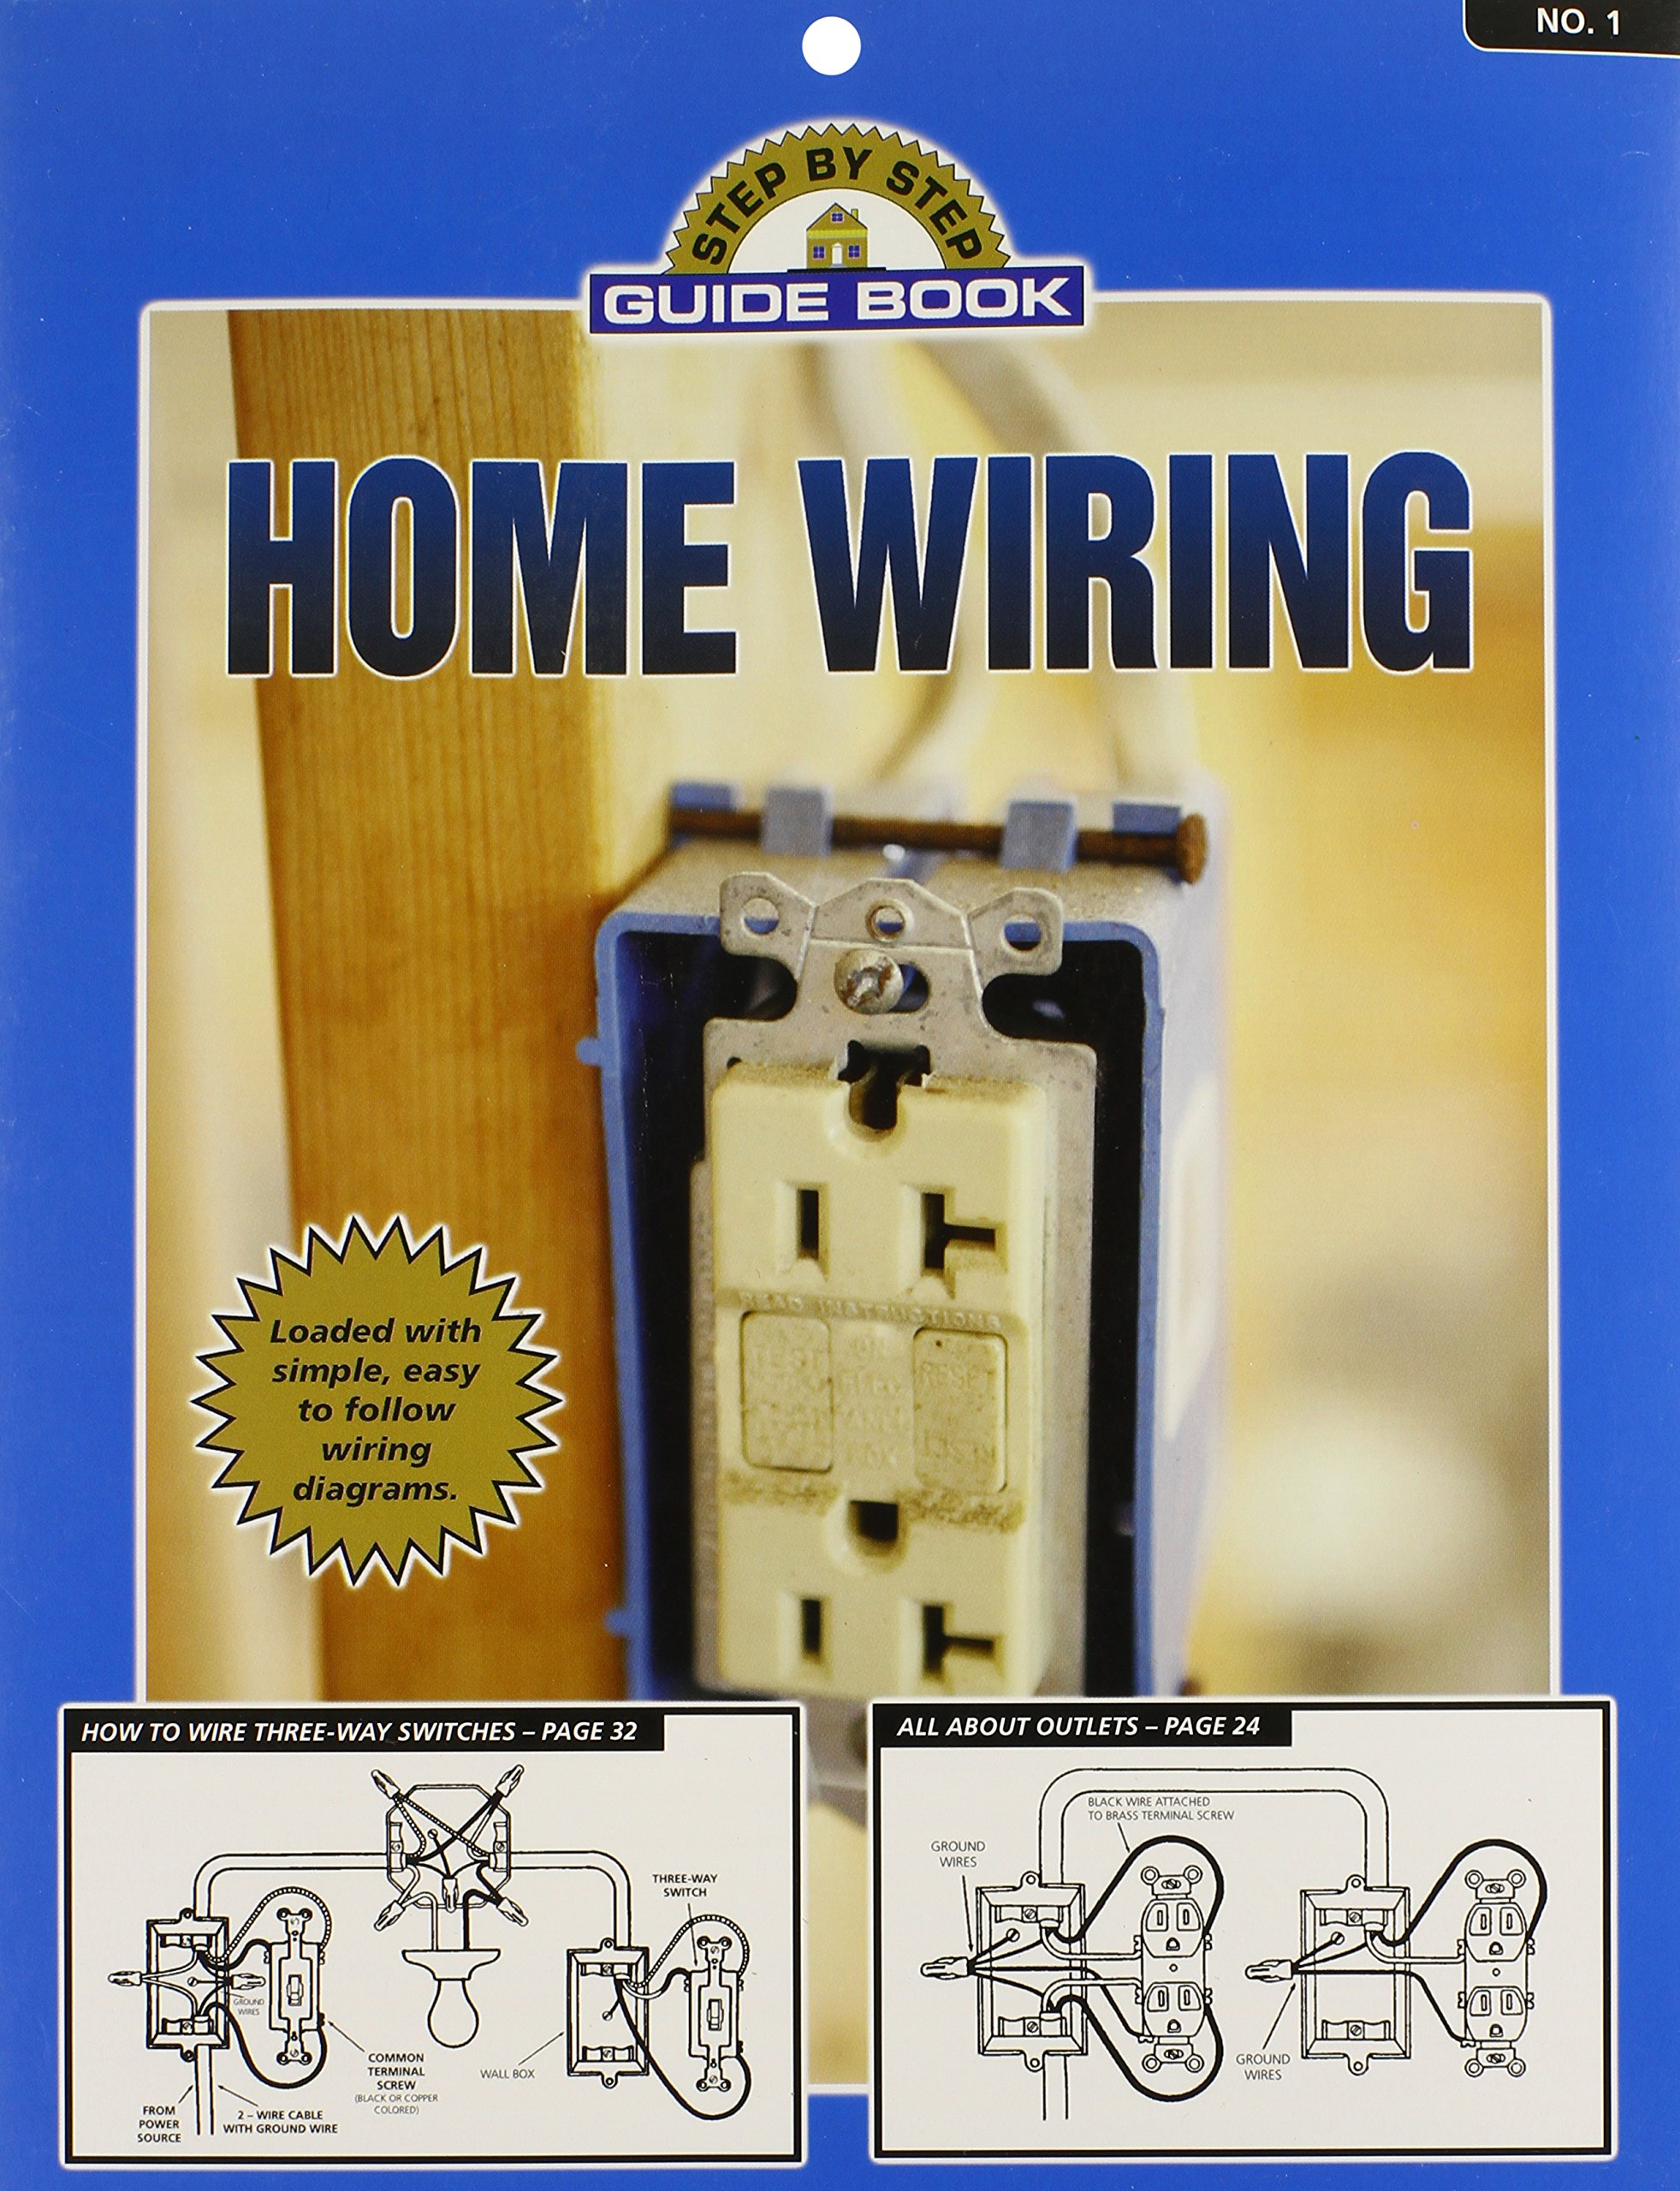 step by step guide book on home wiring ray mcreynolds elaine rh amazon com home electrical wiring book free download home electrical wiring book free download